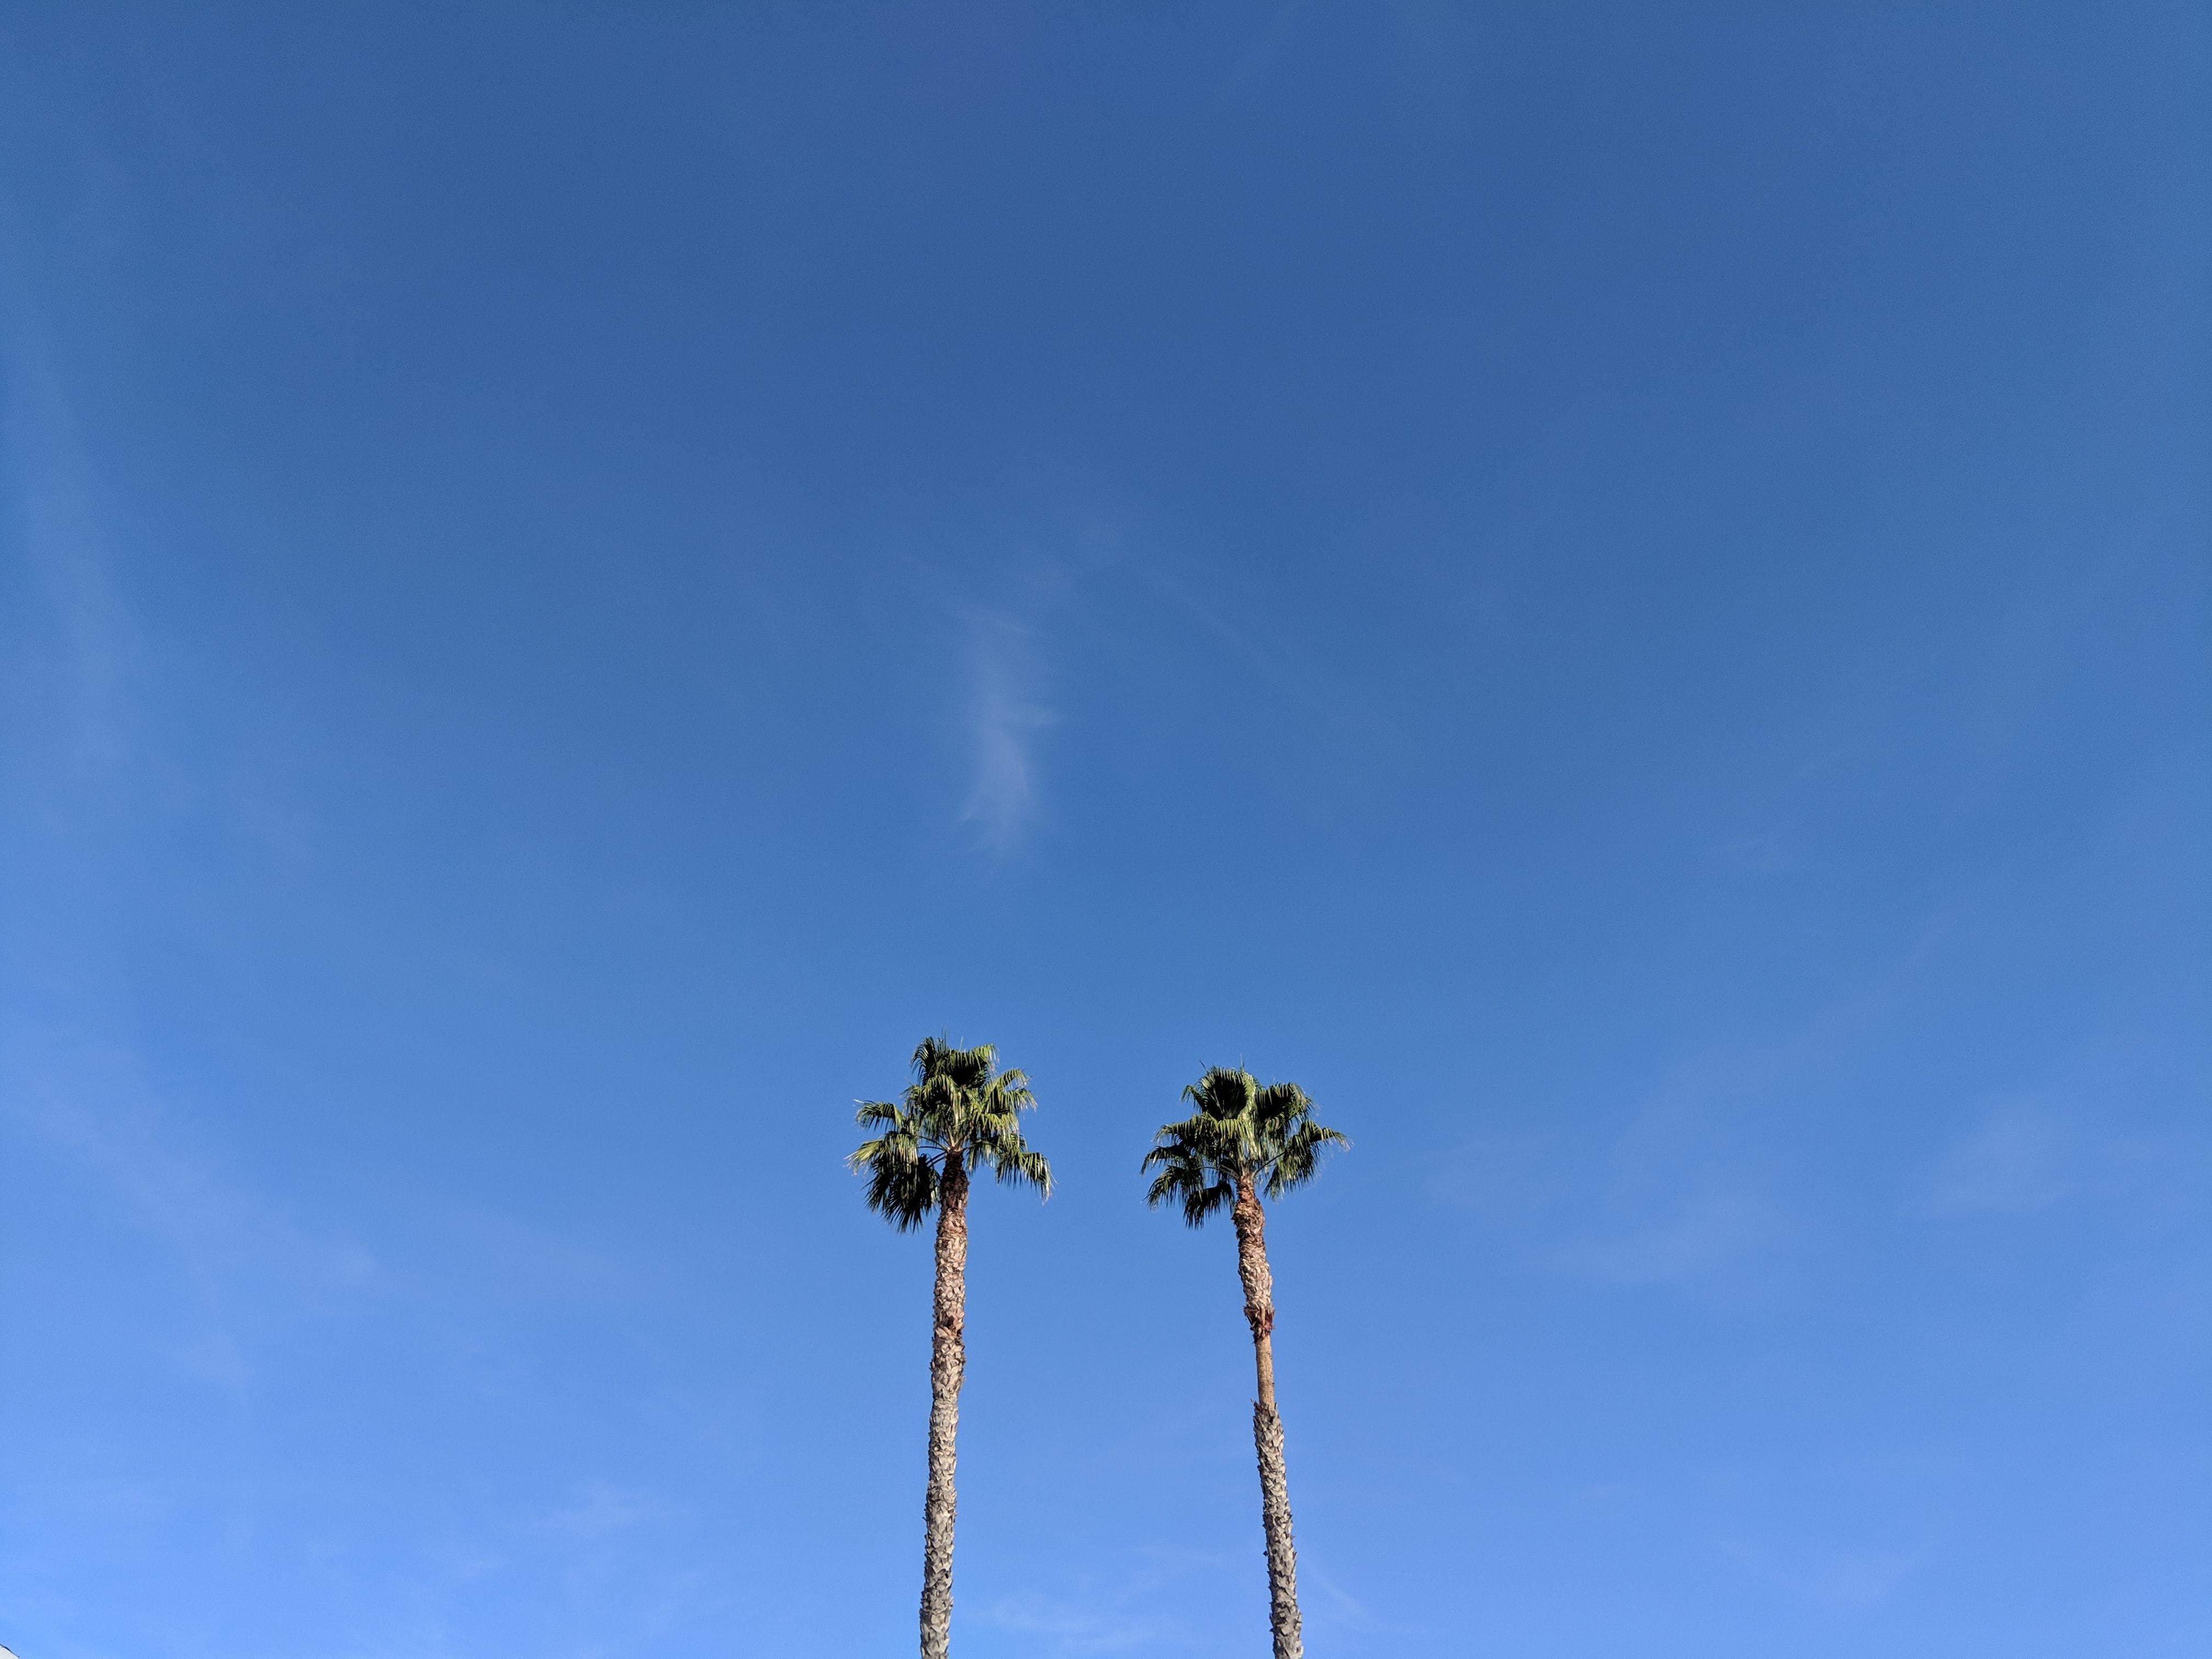 two green palm trees during daytime